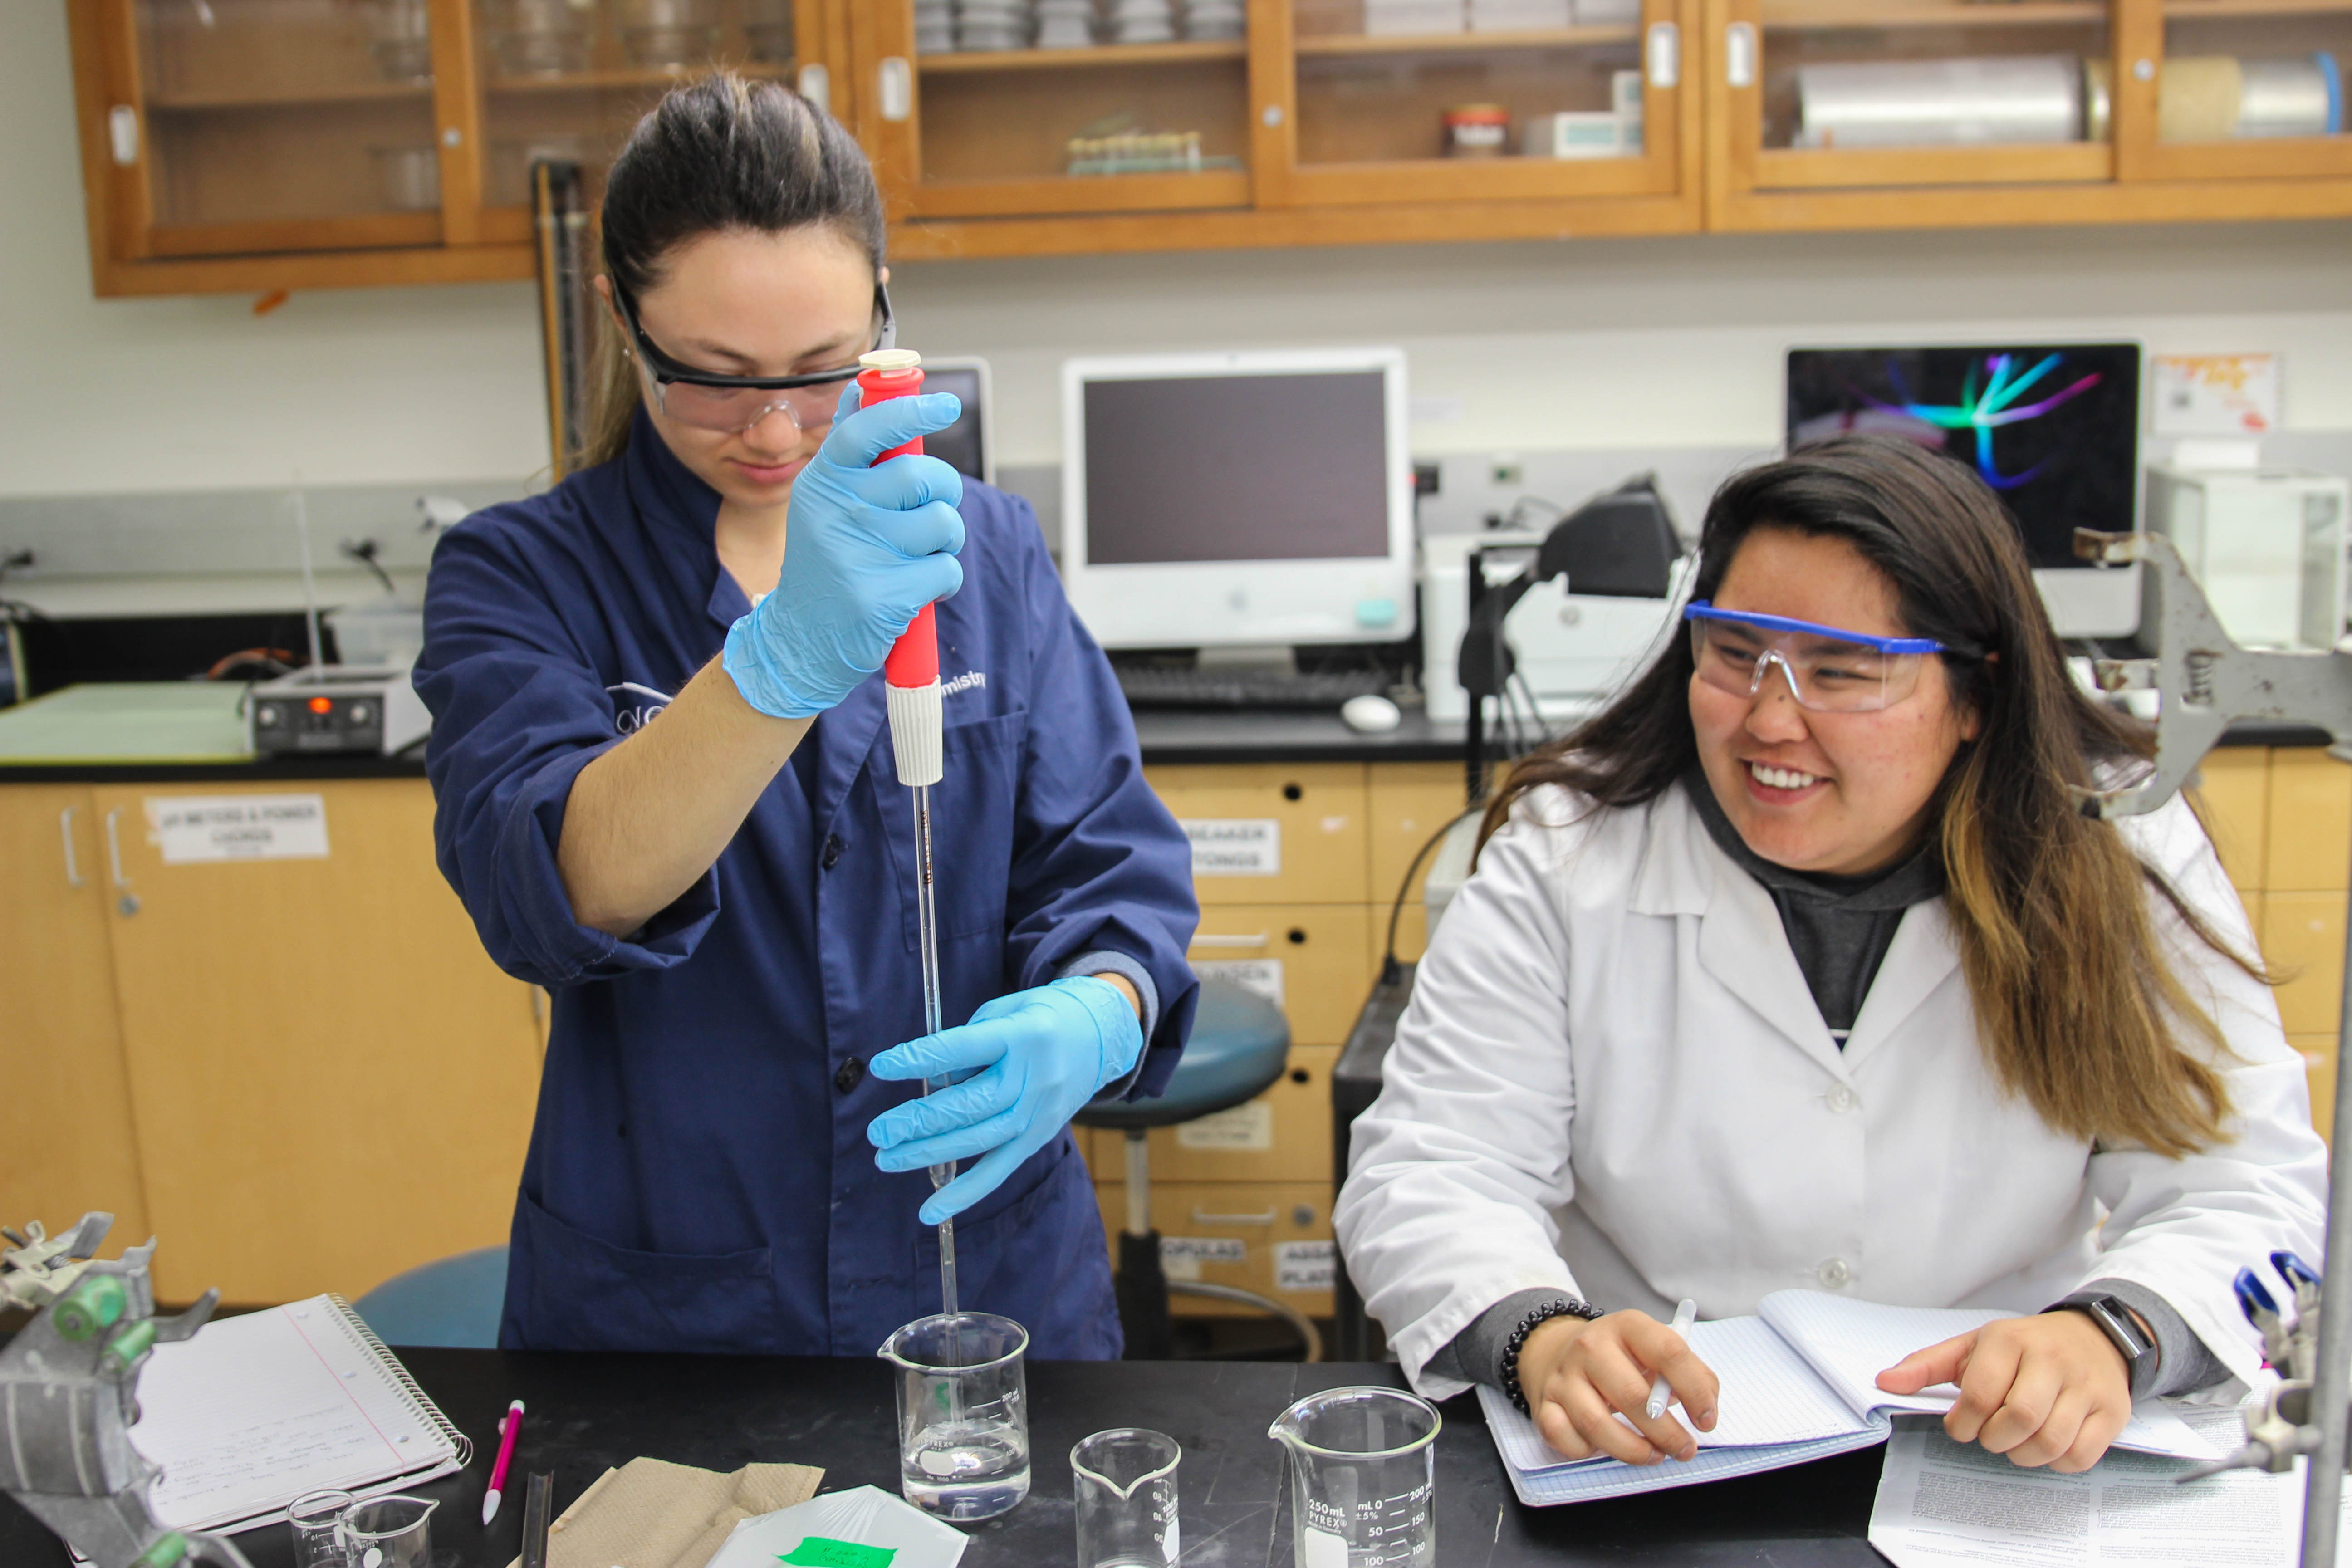 A chemistry student in a blue lab coat uses a pipette while another chemistry student takes notes